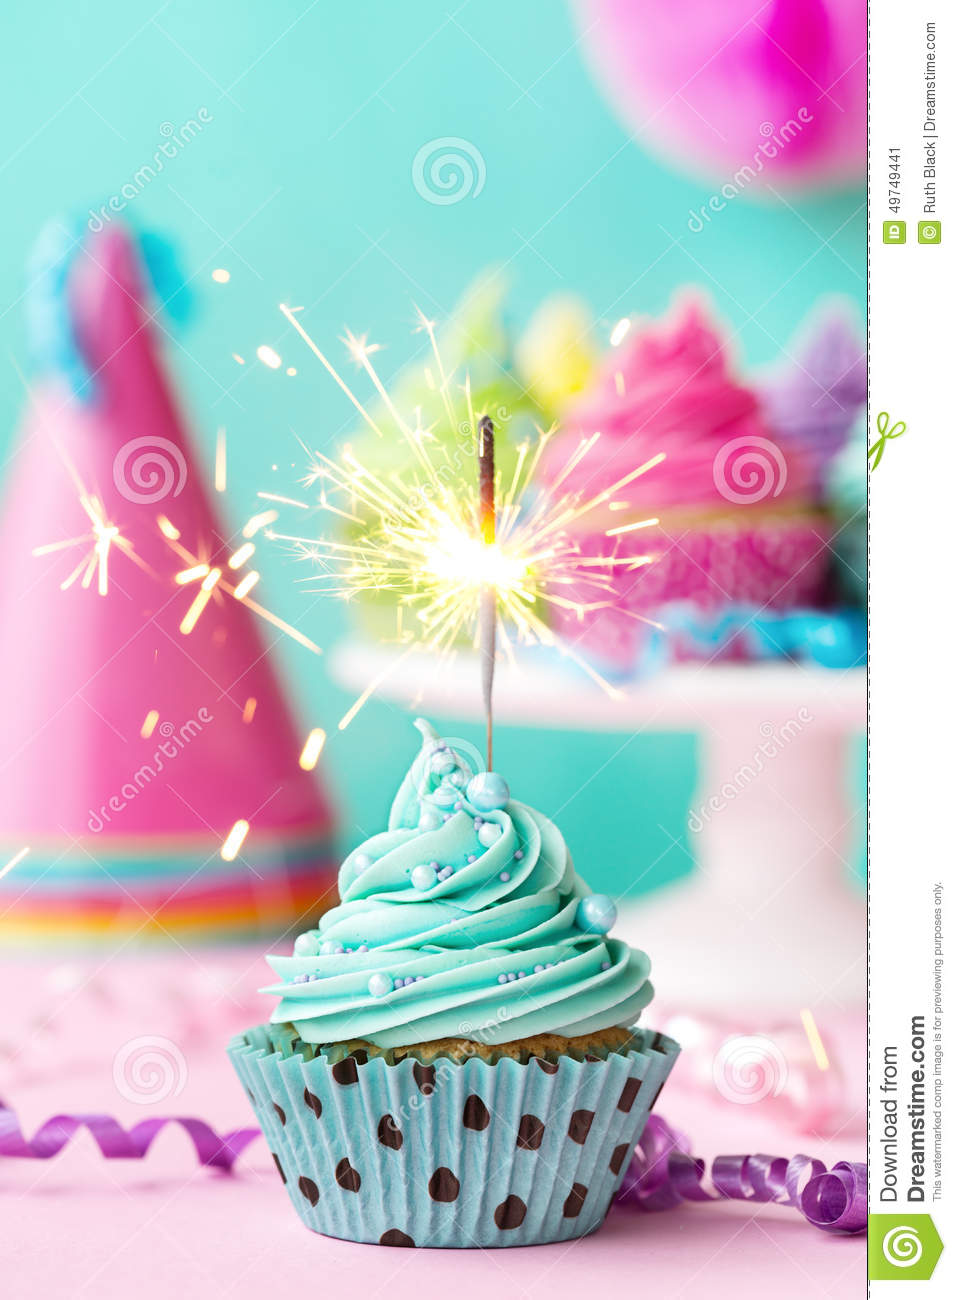 Birthday Candle Hat Cupcake With Sparkler Stock Photo - Image: 49749441